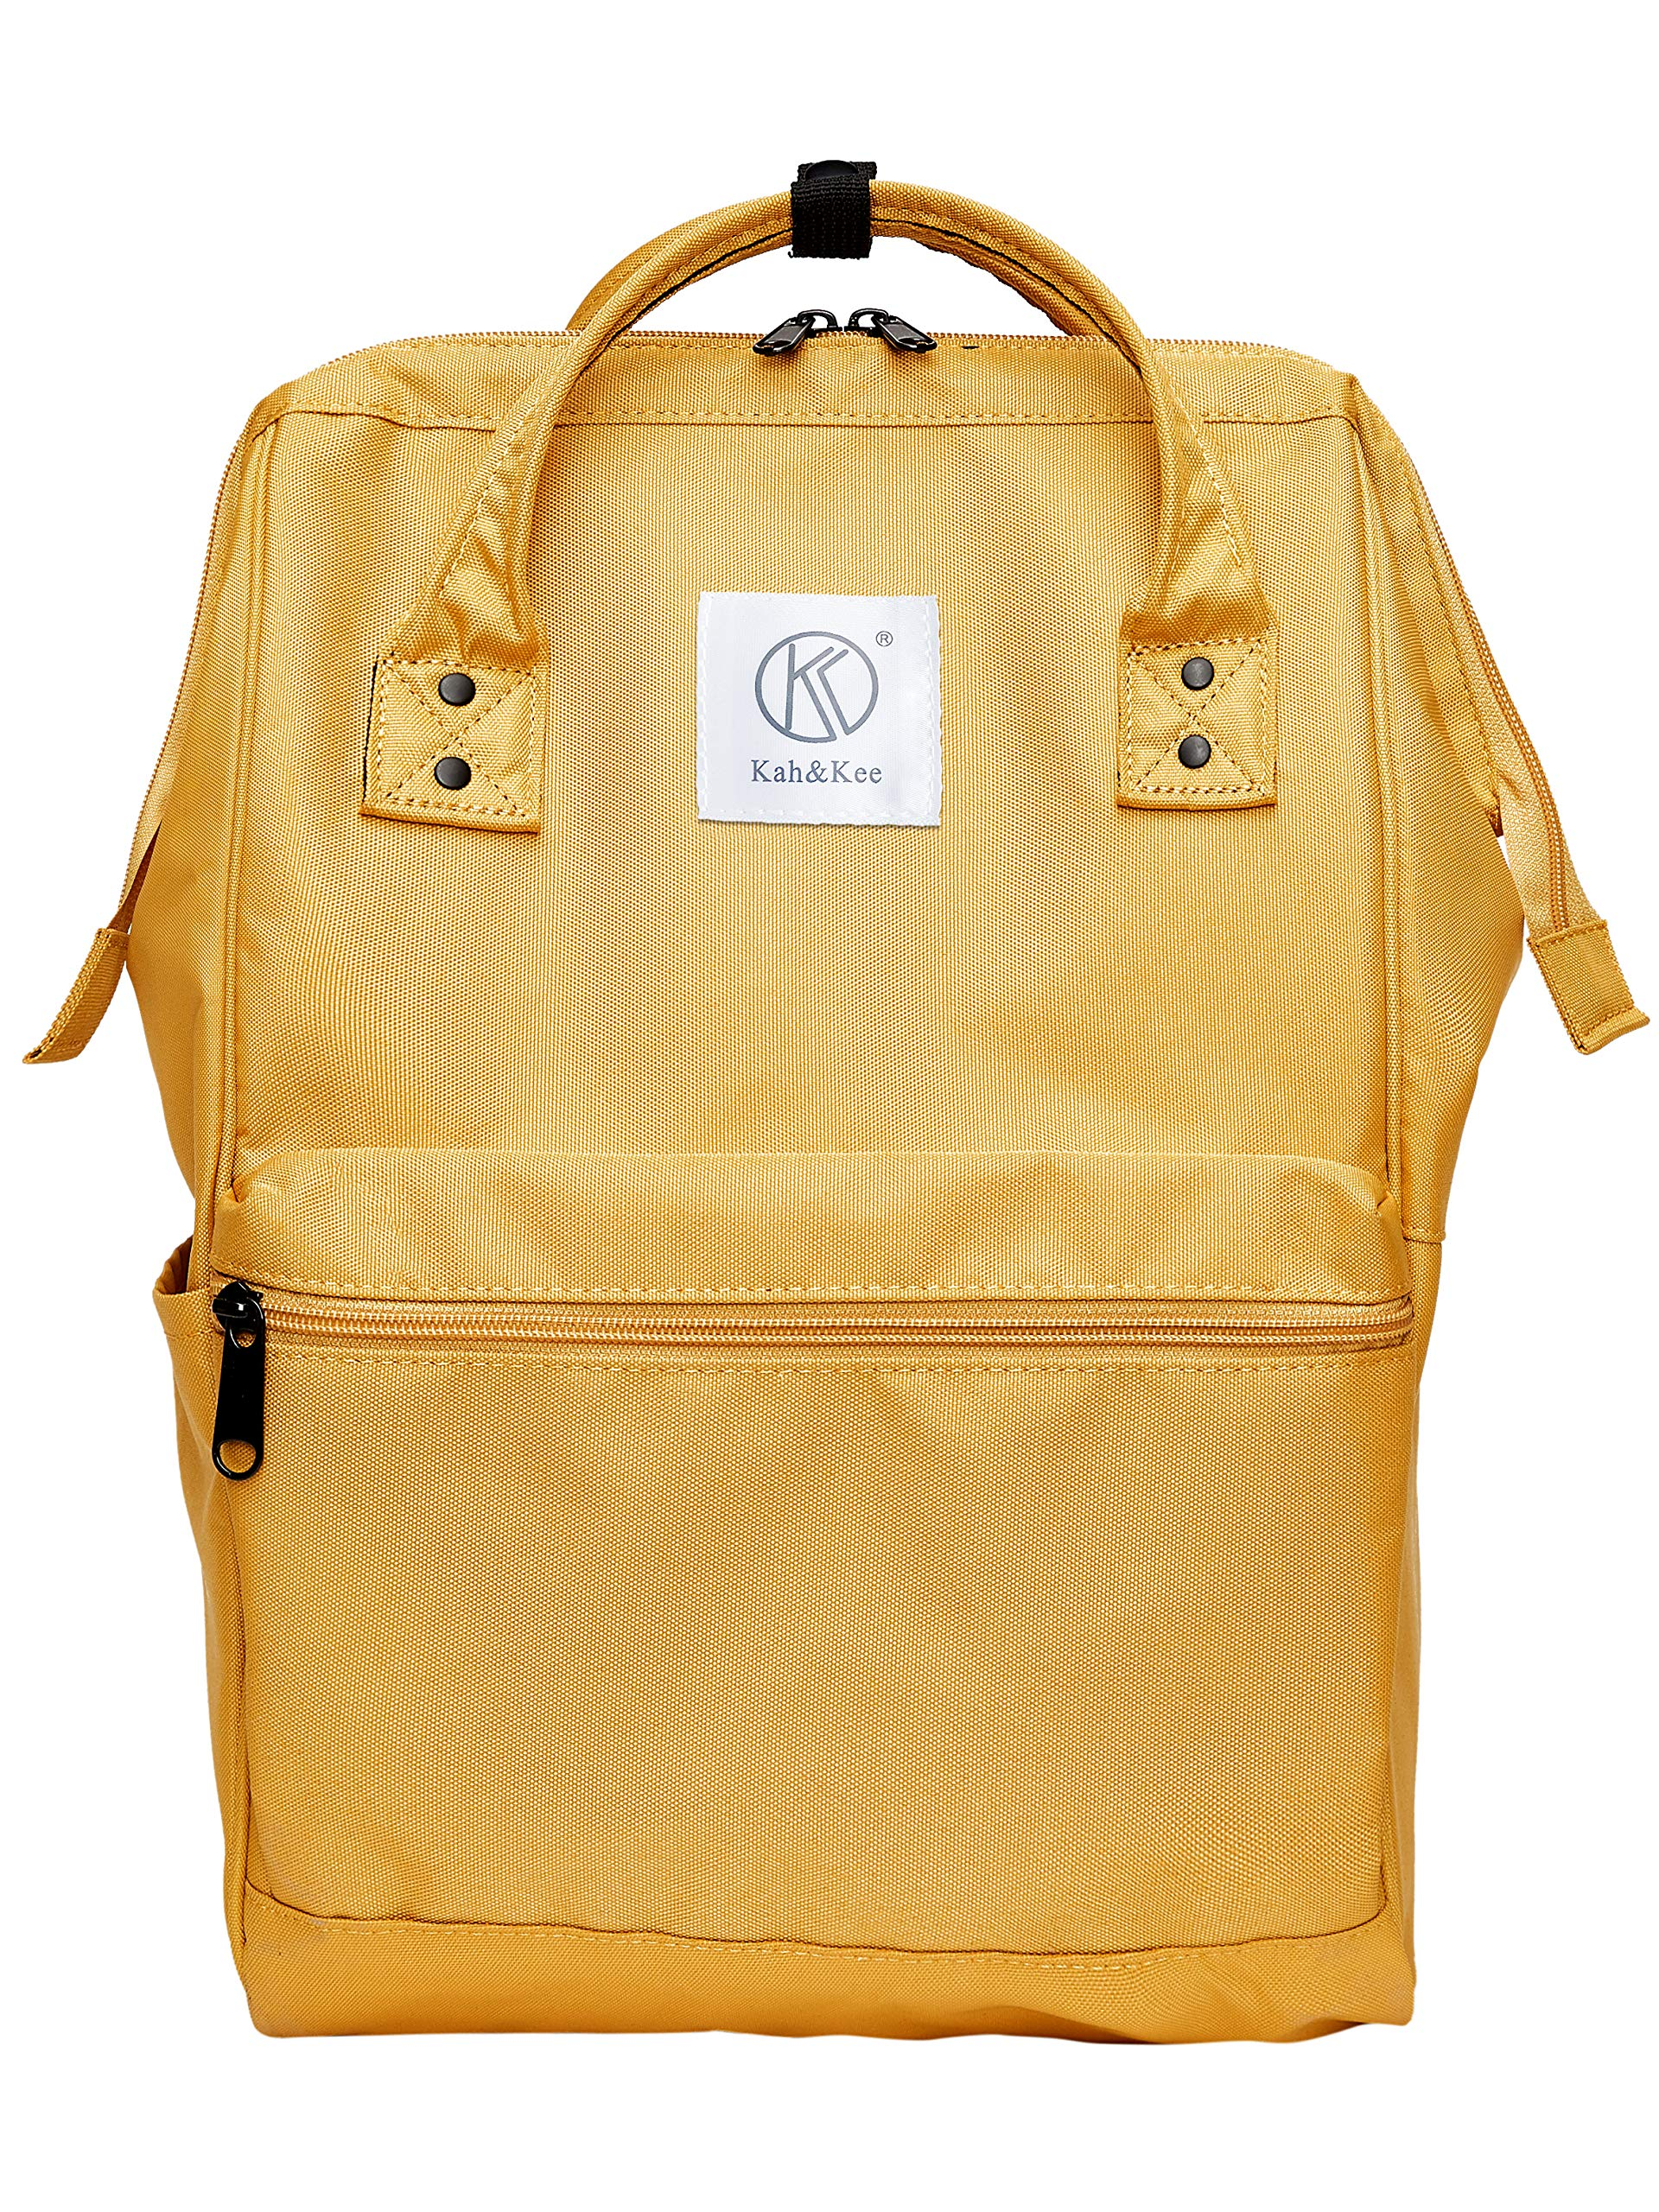 Kah&Kee Polyester Backpack with Laptop Compartment Waterproof Anti-theft Travel School for Women Man (Yellow, Large) by Kah&Kee